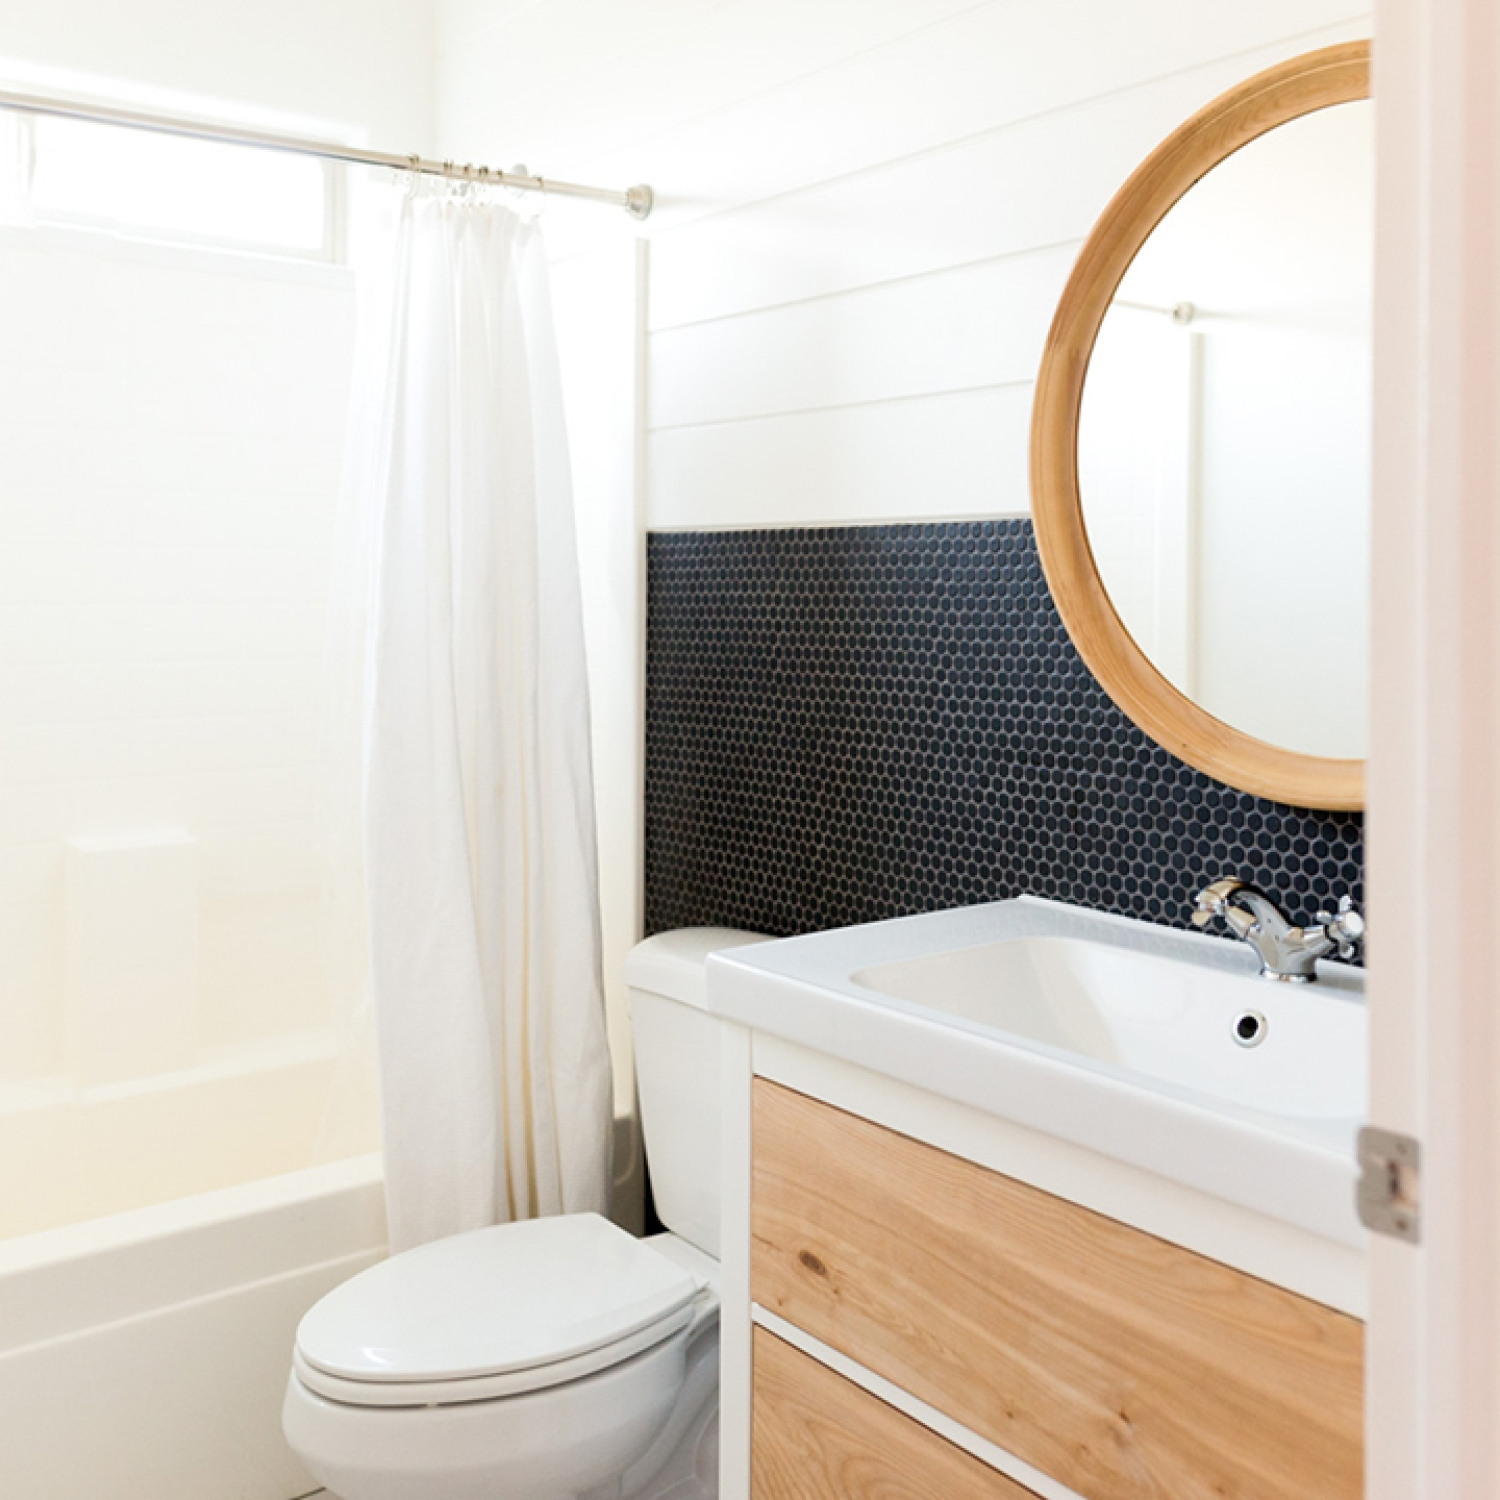 Diy Bathroom Renovation On A Budget Tips For Affordable Bathroom Renovations